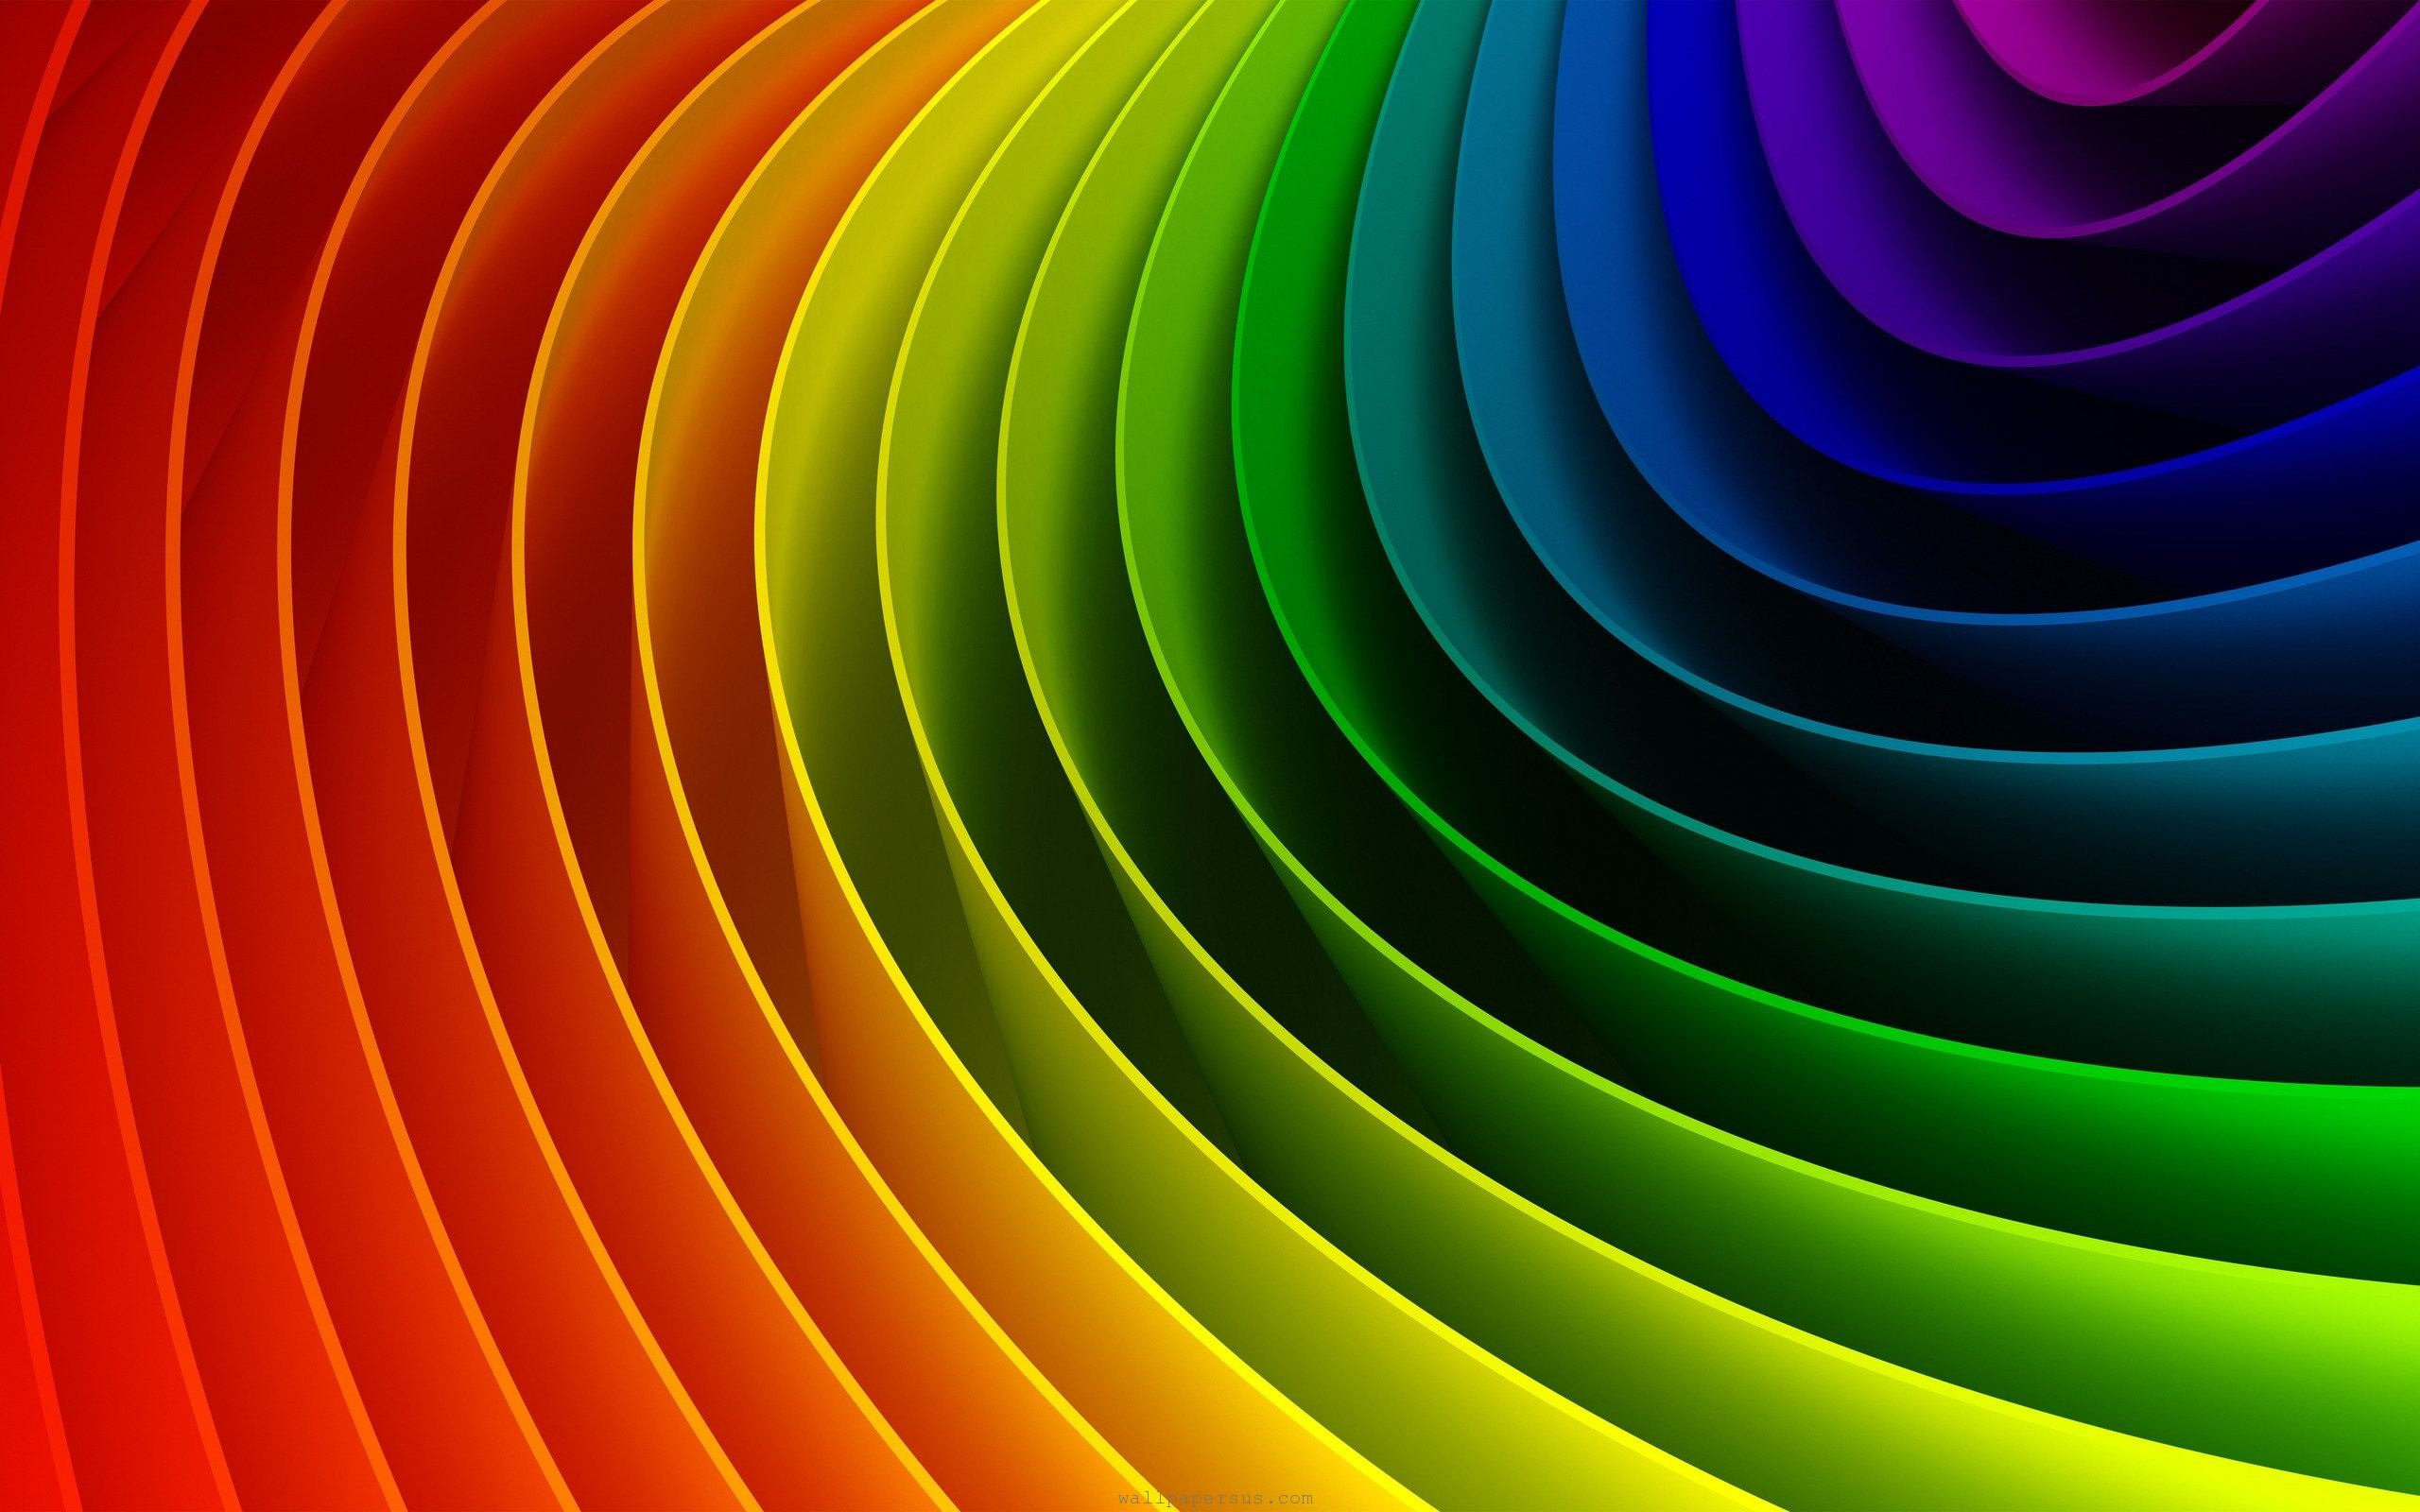 3D Abstract Colorful Wallpapers HD Wallpaper 2560x1600